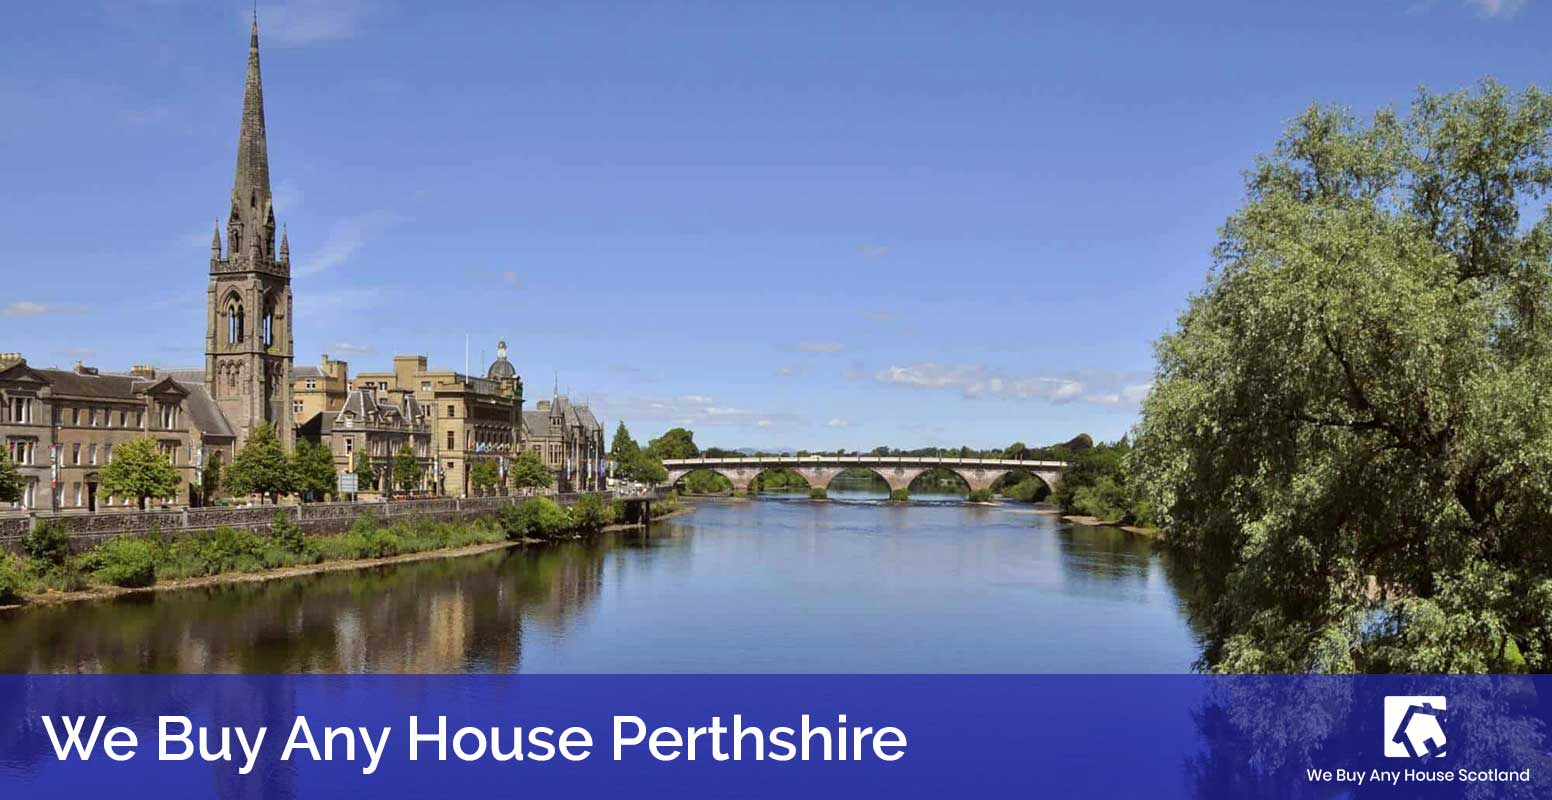 We Buy Any House Perthshire